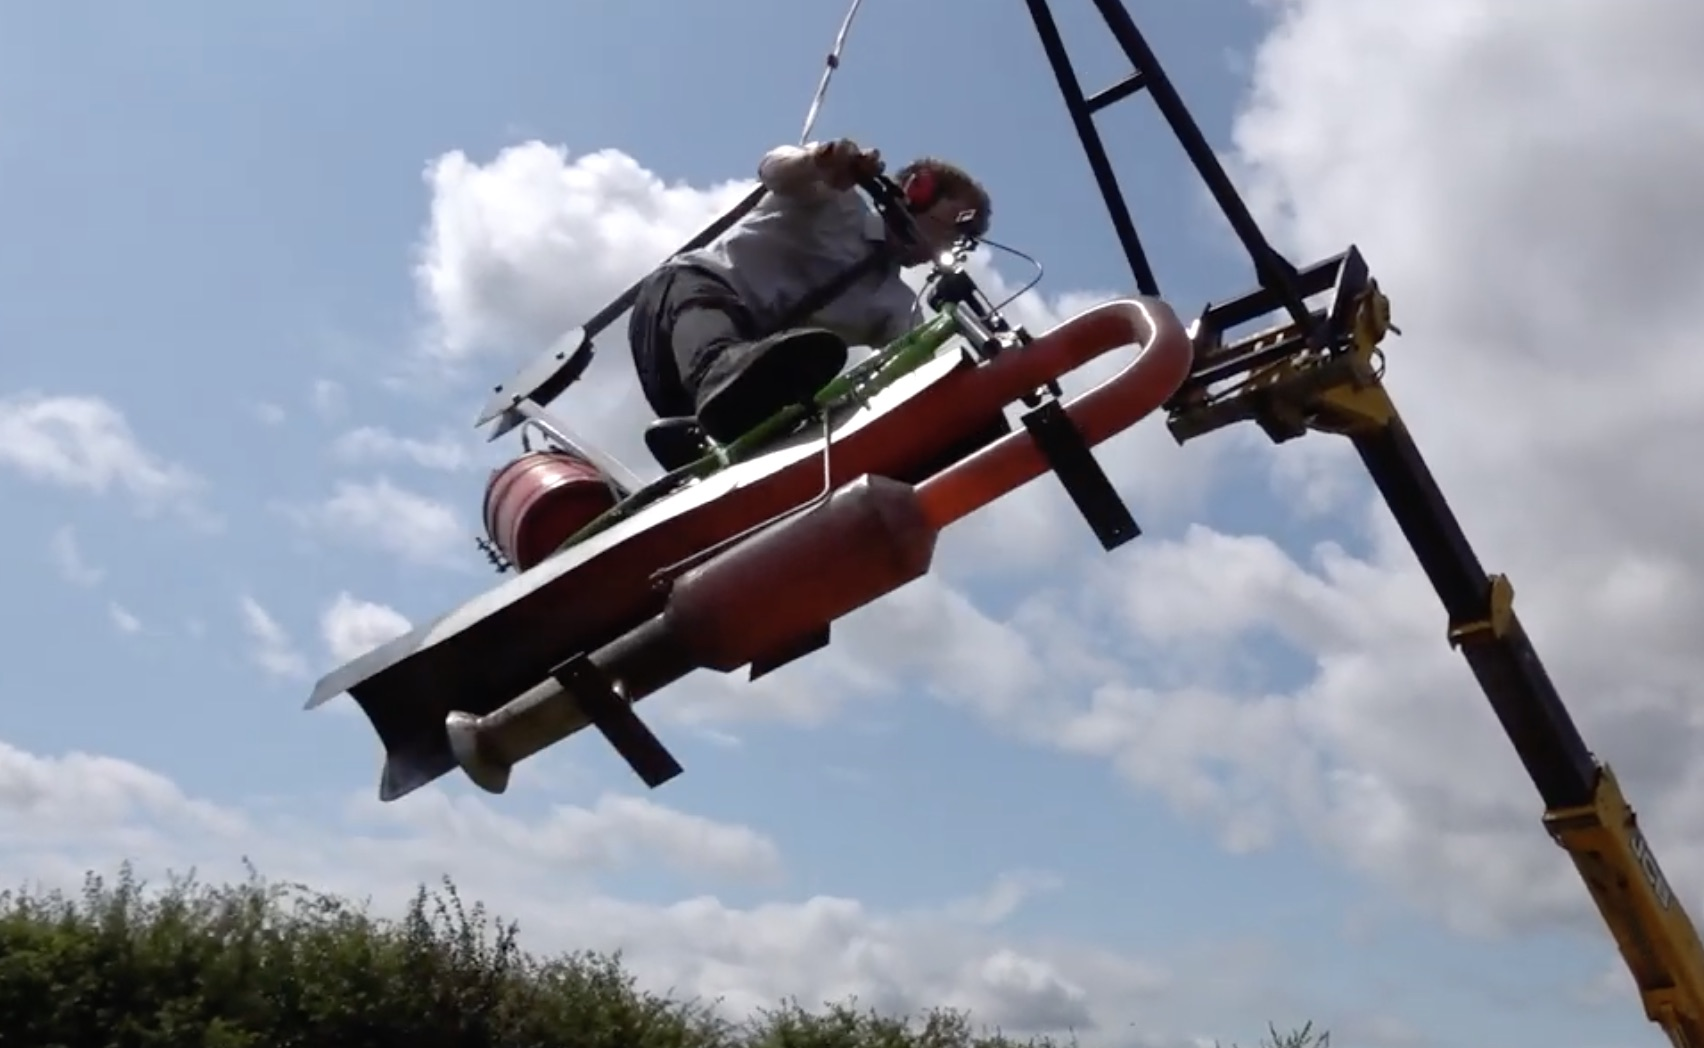 Life Insurance Doesn't Cover This: Britain's Mad Scientist Creates A Jet-Powered Swing